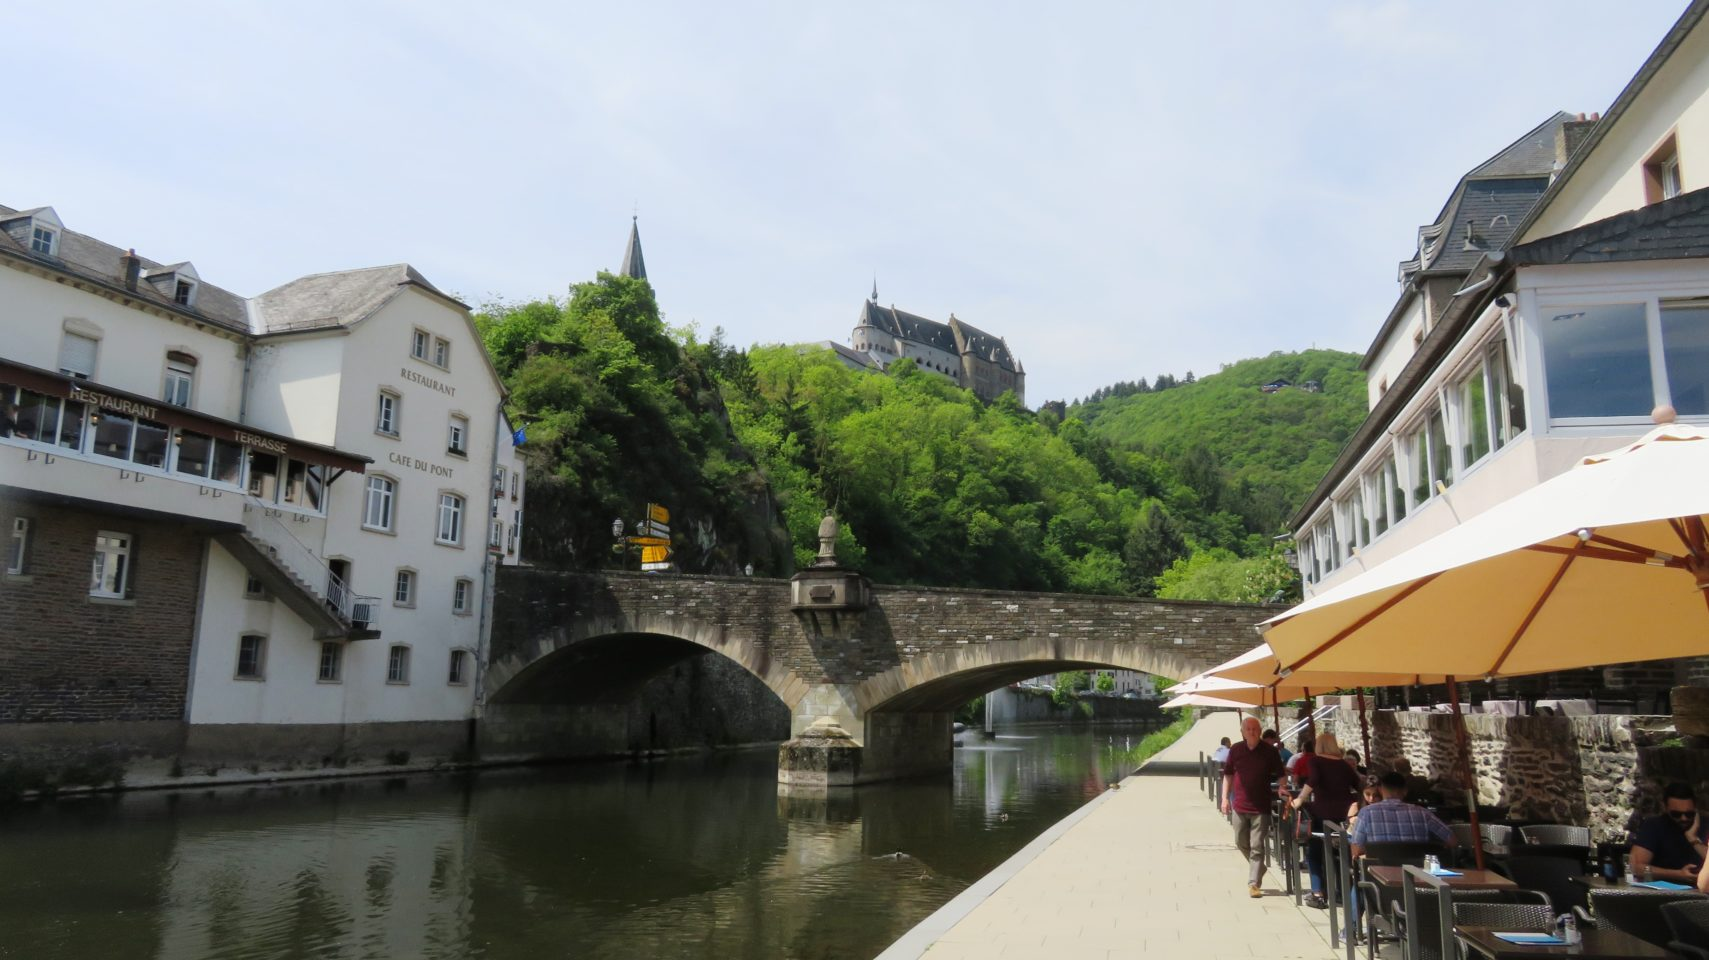 Auberge de l'Our and Our River in Vianden, <em><strong>Luxembourg</strong></em>